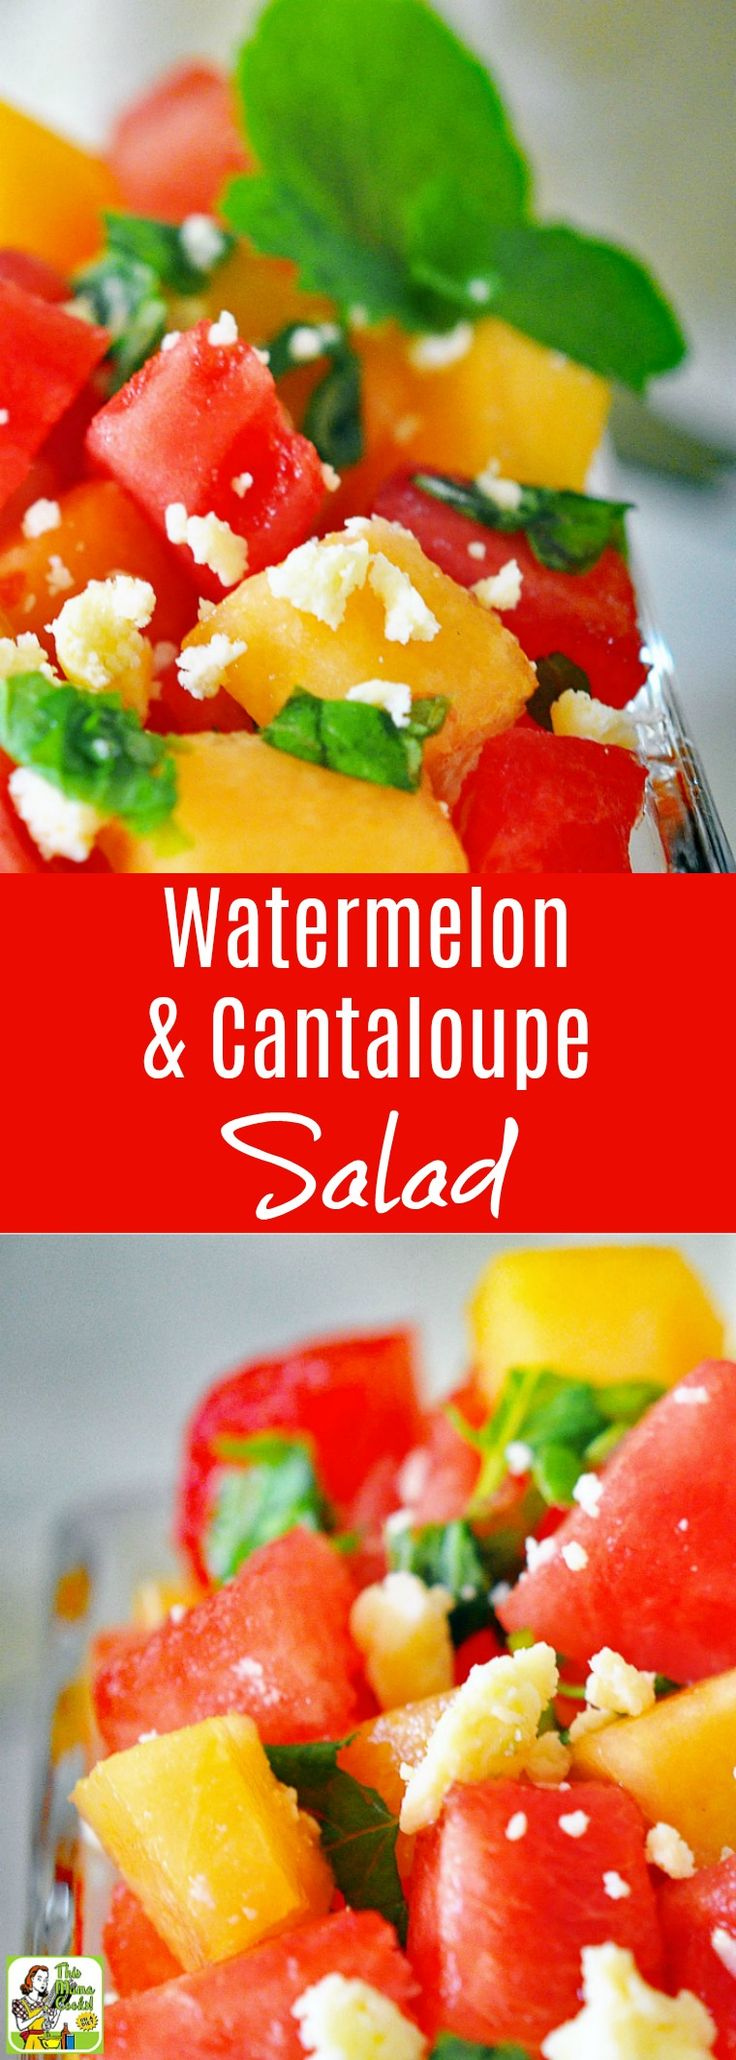 This Watermelon and Cantaloupe Salad recipe is ideal for summer entertaining. Click to get this naturally gluten free, diabetic friendly, and vegetarian fruit salad recipe. This watermelon and cantaloupe salad made with mint and feta is easy to make and perfect for BBQs and summer picnics. via @amnichols